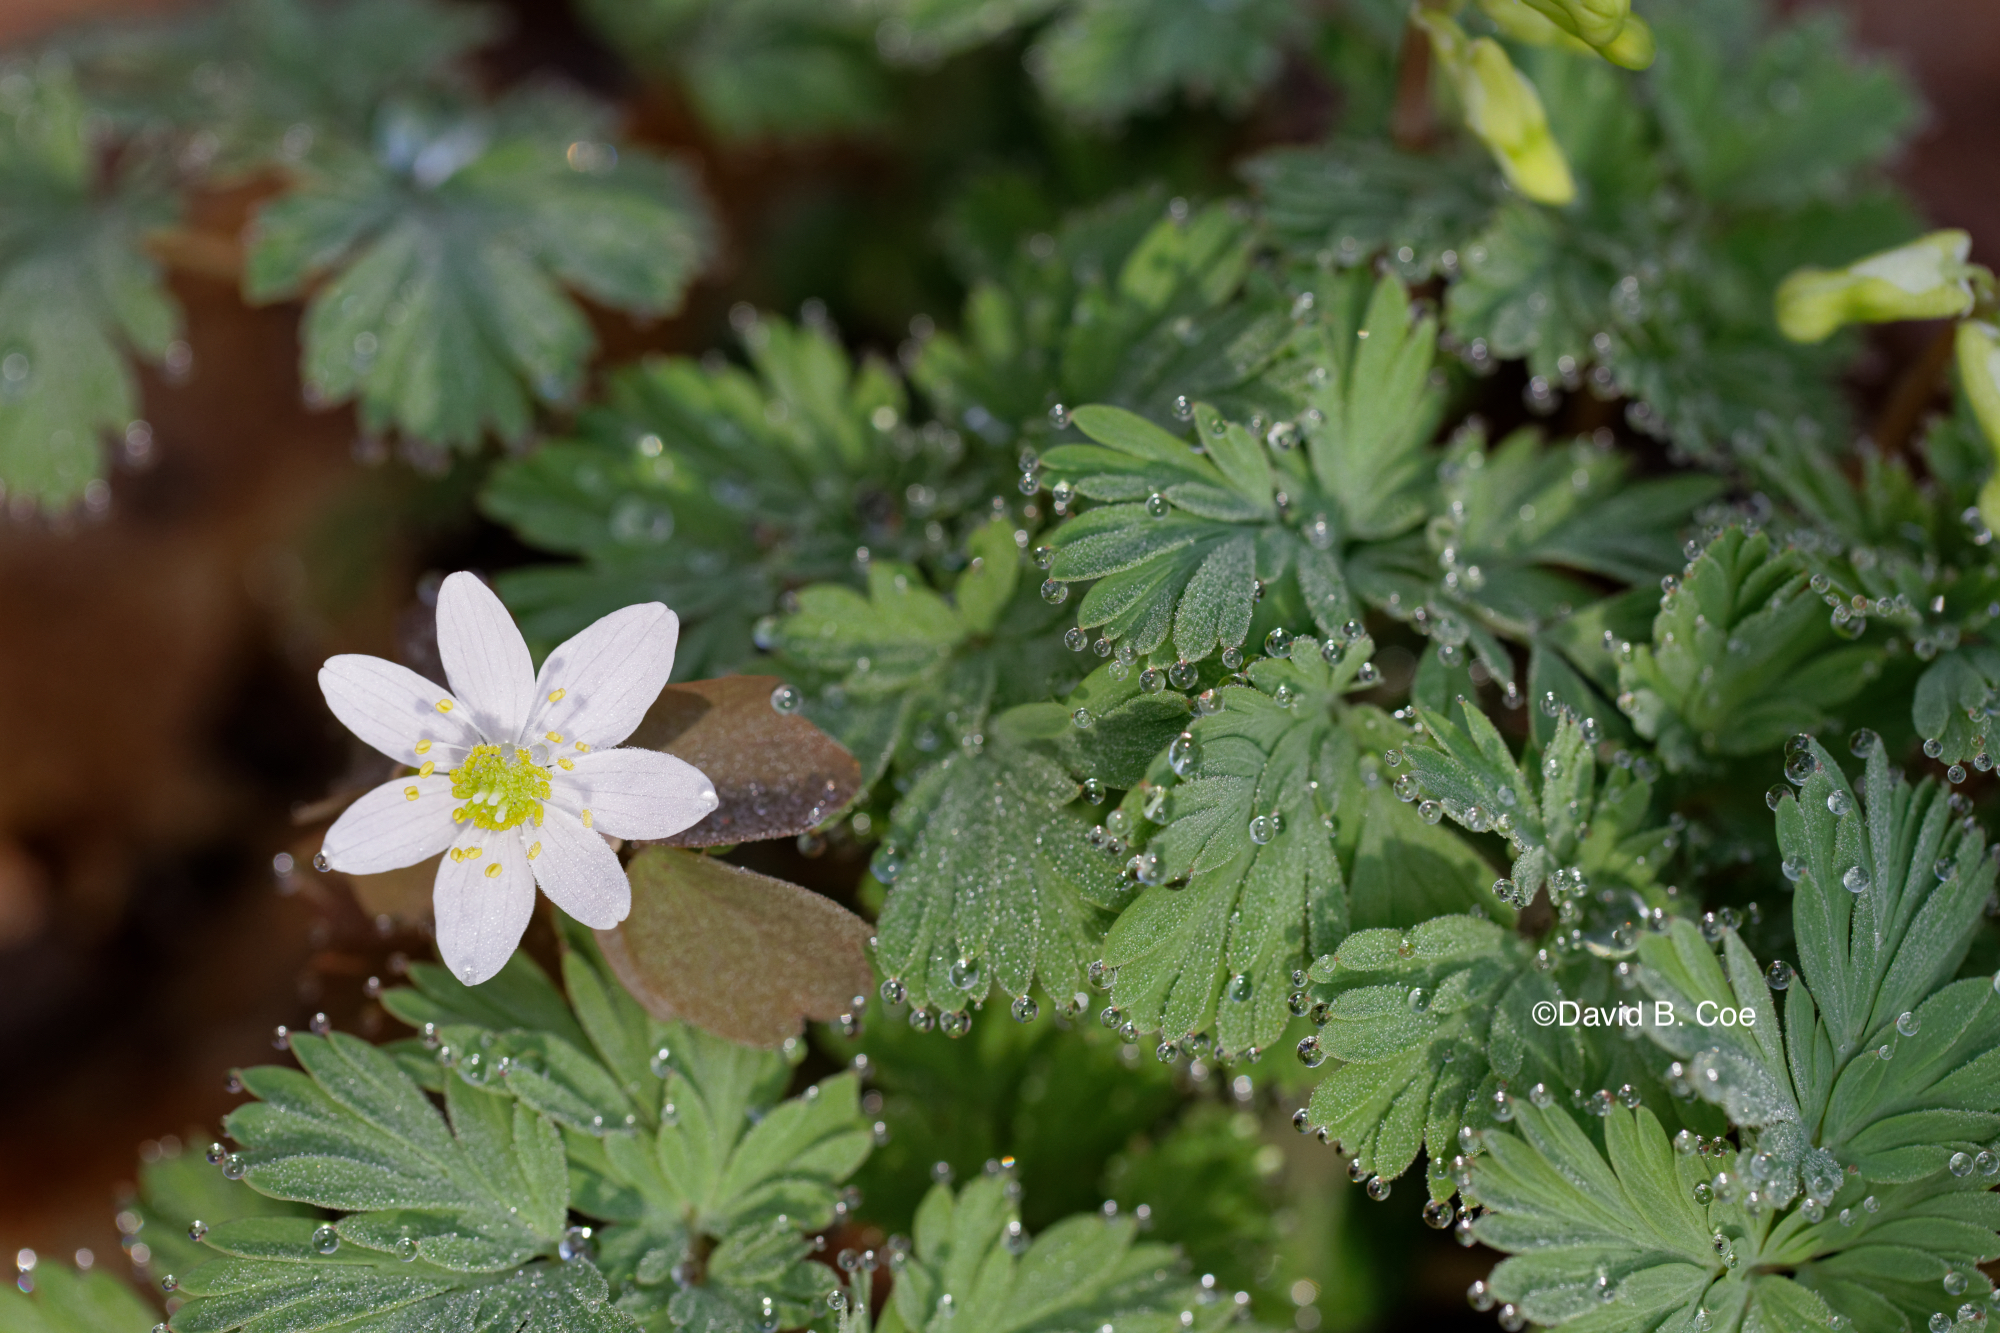 Raindrops on Rue Anenome and Dutchman's Breeches, by David B. Coe